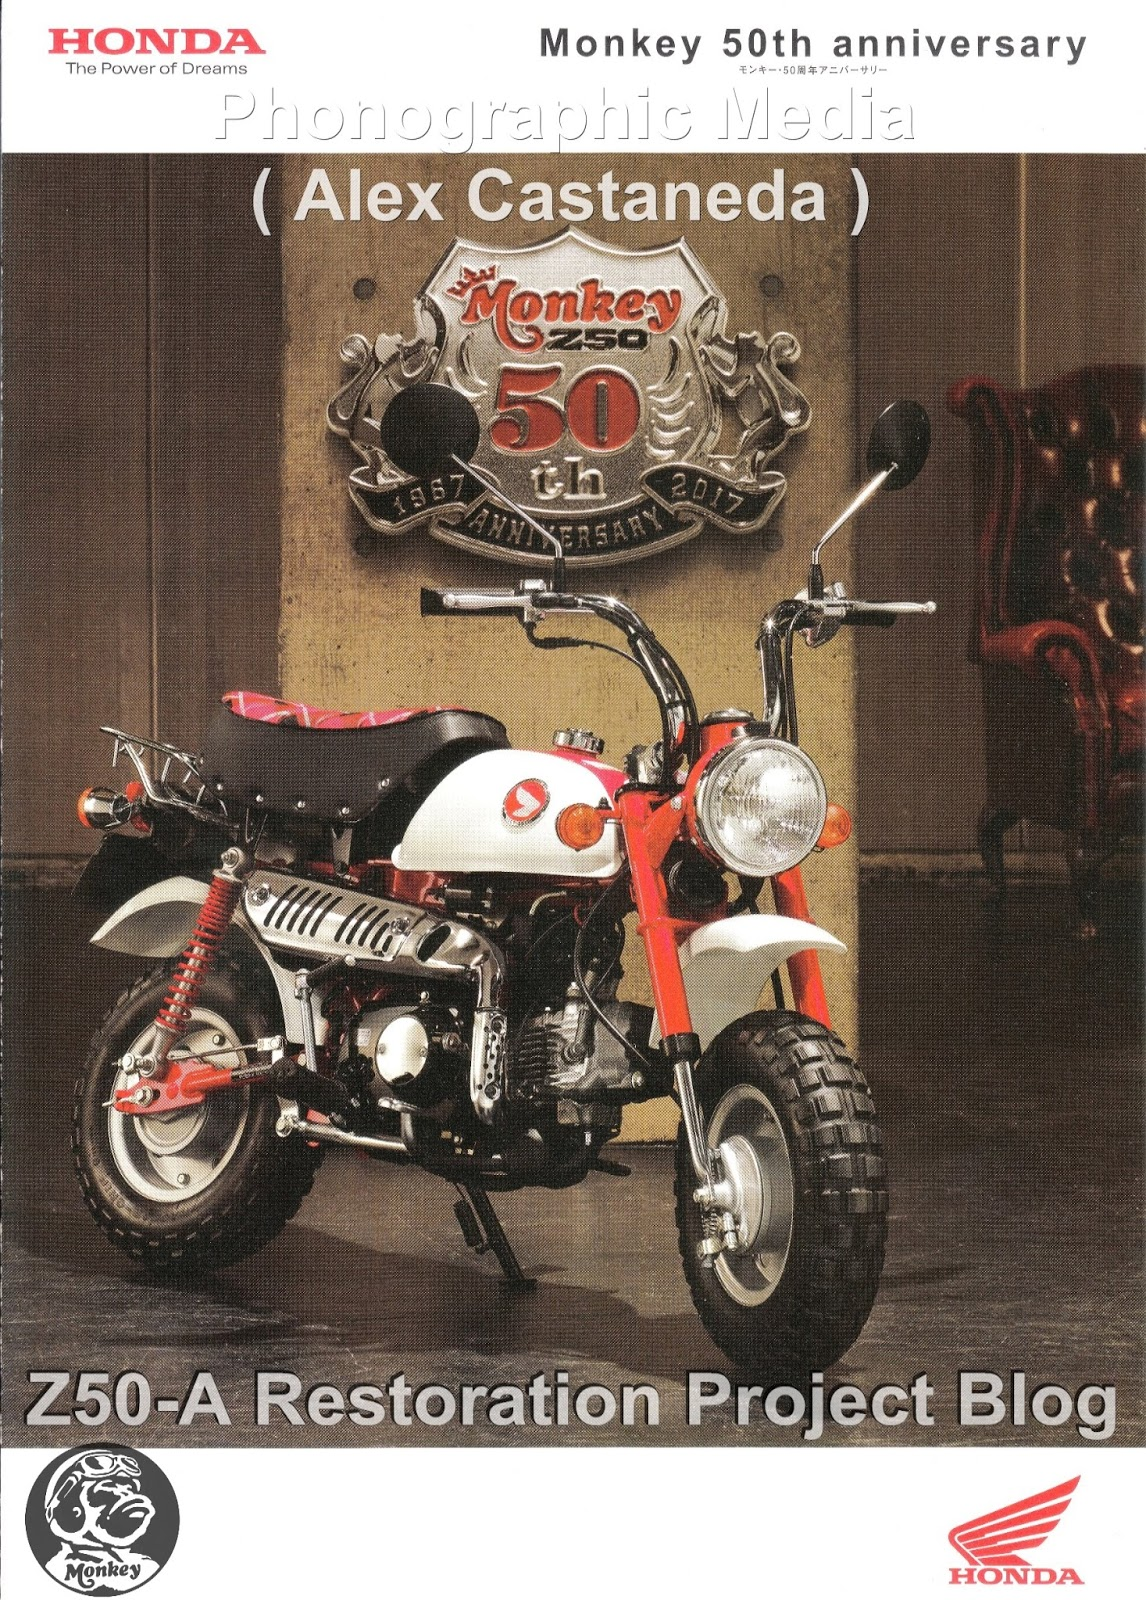 The above picture shows the 50th anniversary Monkey Z50 ( 1967-2017 )